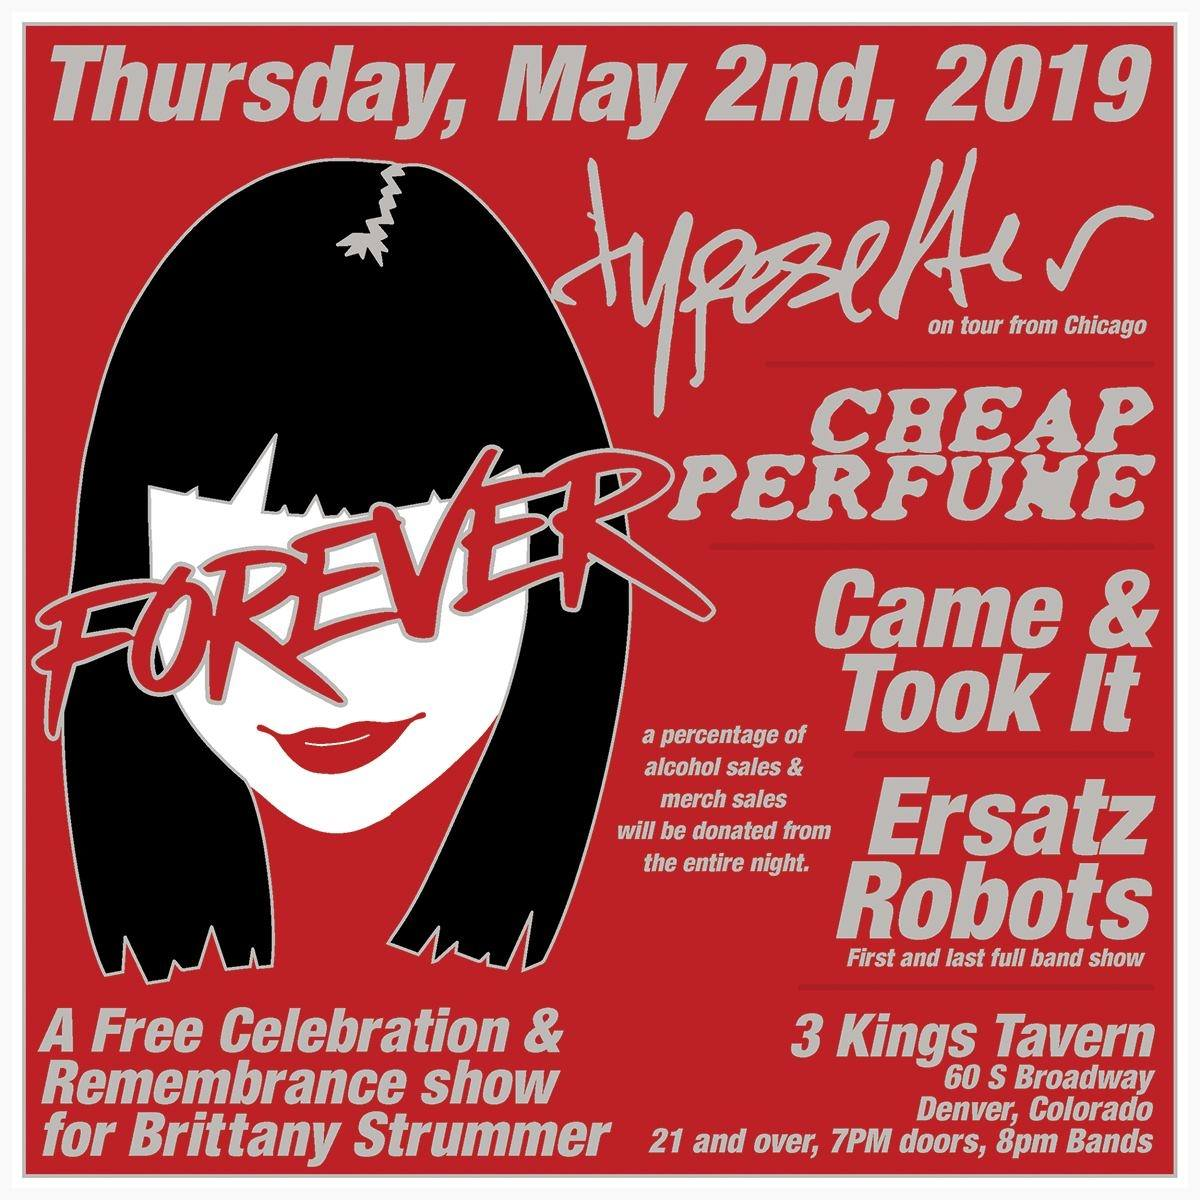 Brittany Strummer memorial show at 3 Kings Tavern – May 2, 2019